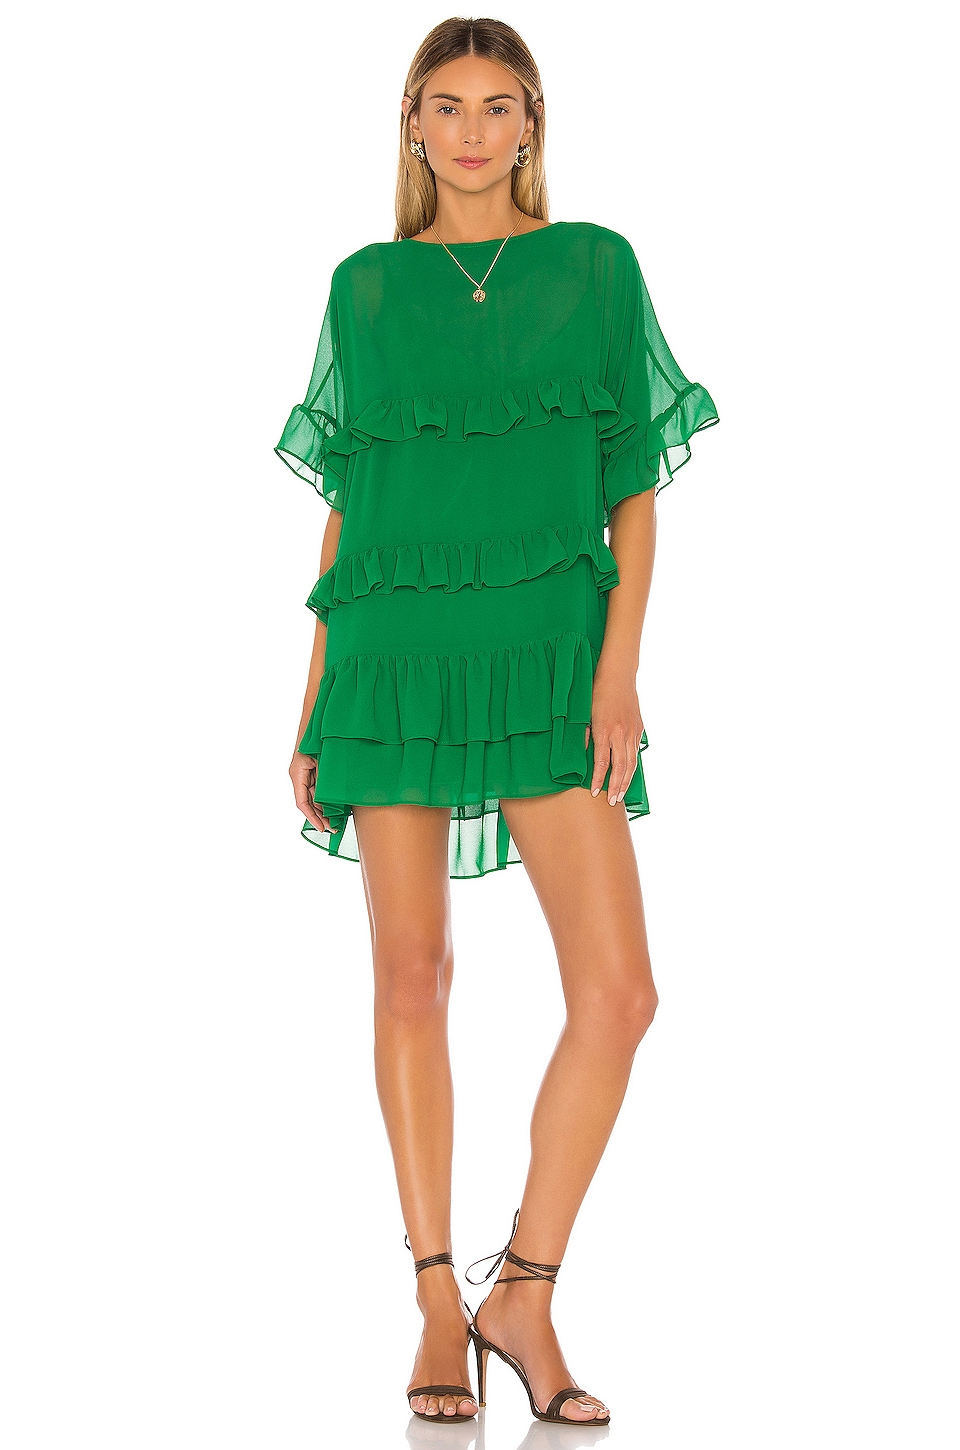 Lovers + Friends Mona Mini Dress in Viridian Green